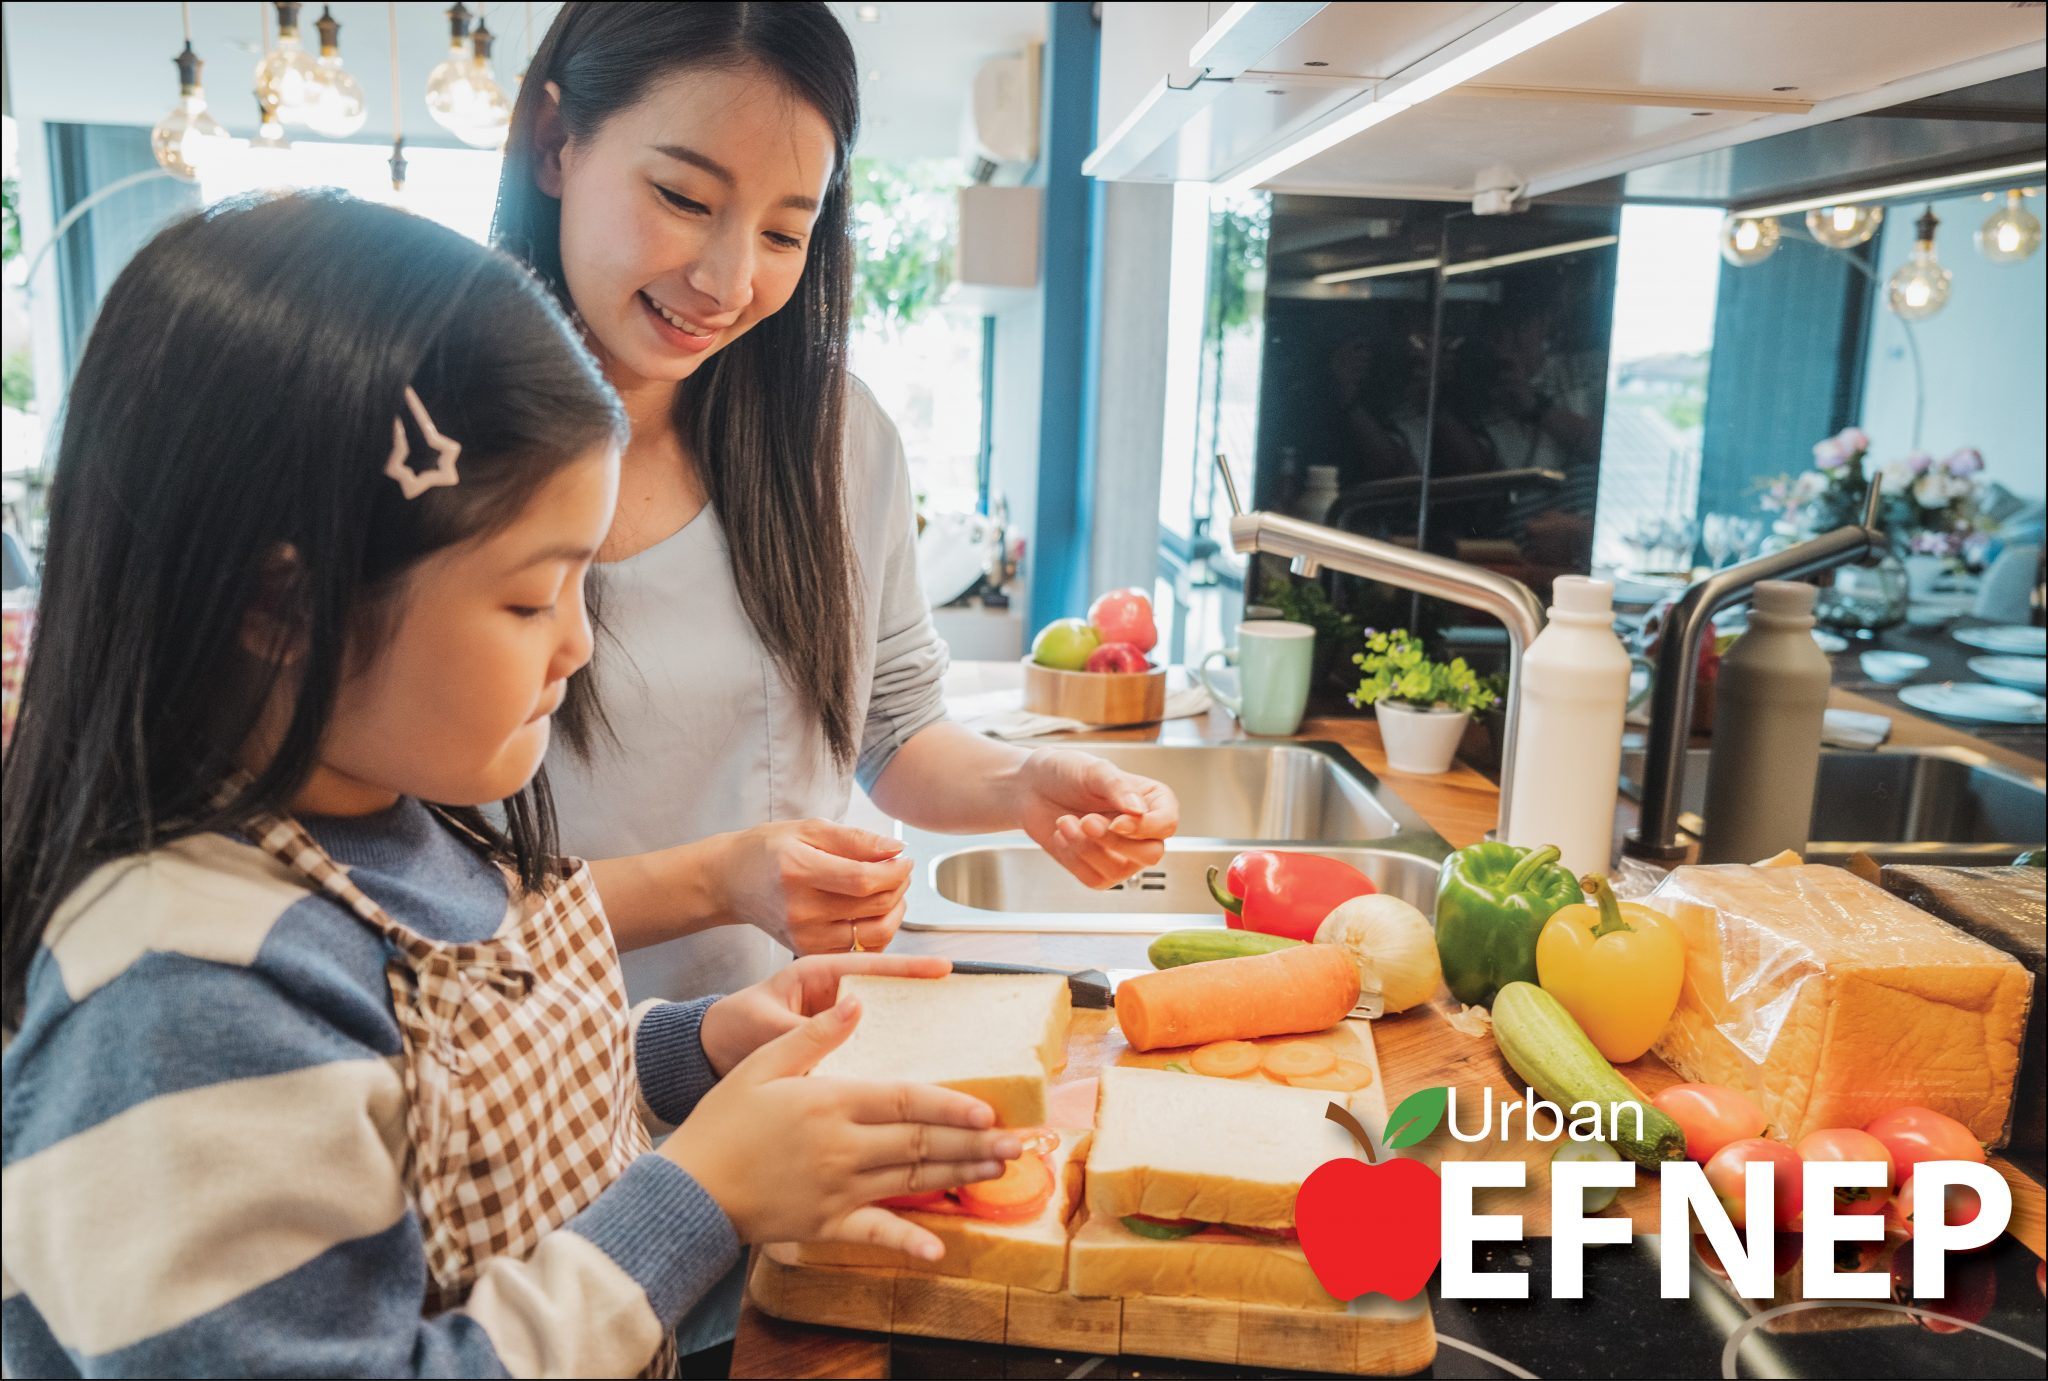 Asian mother and daughter make healthy vegetable sandwiches together in their kitchen